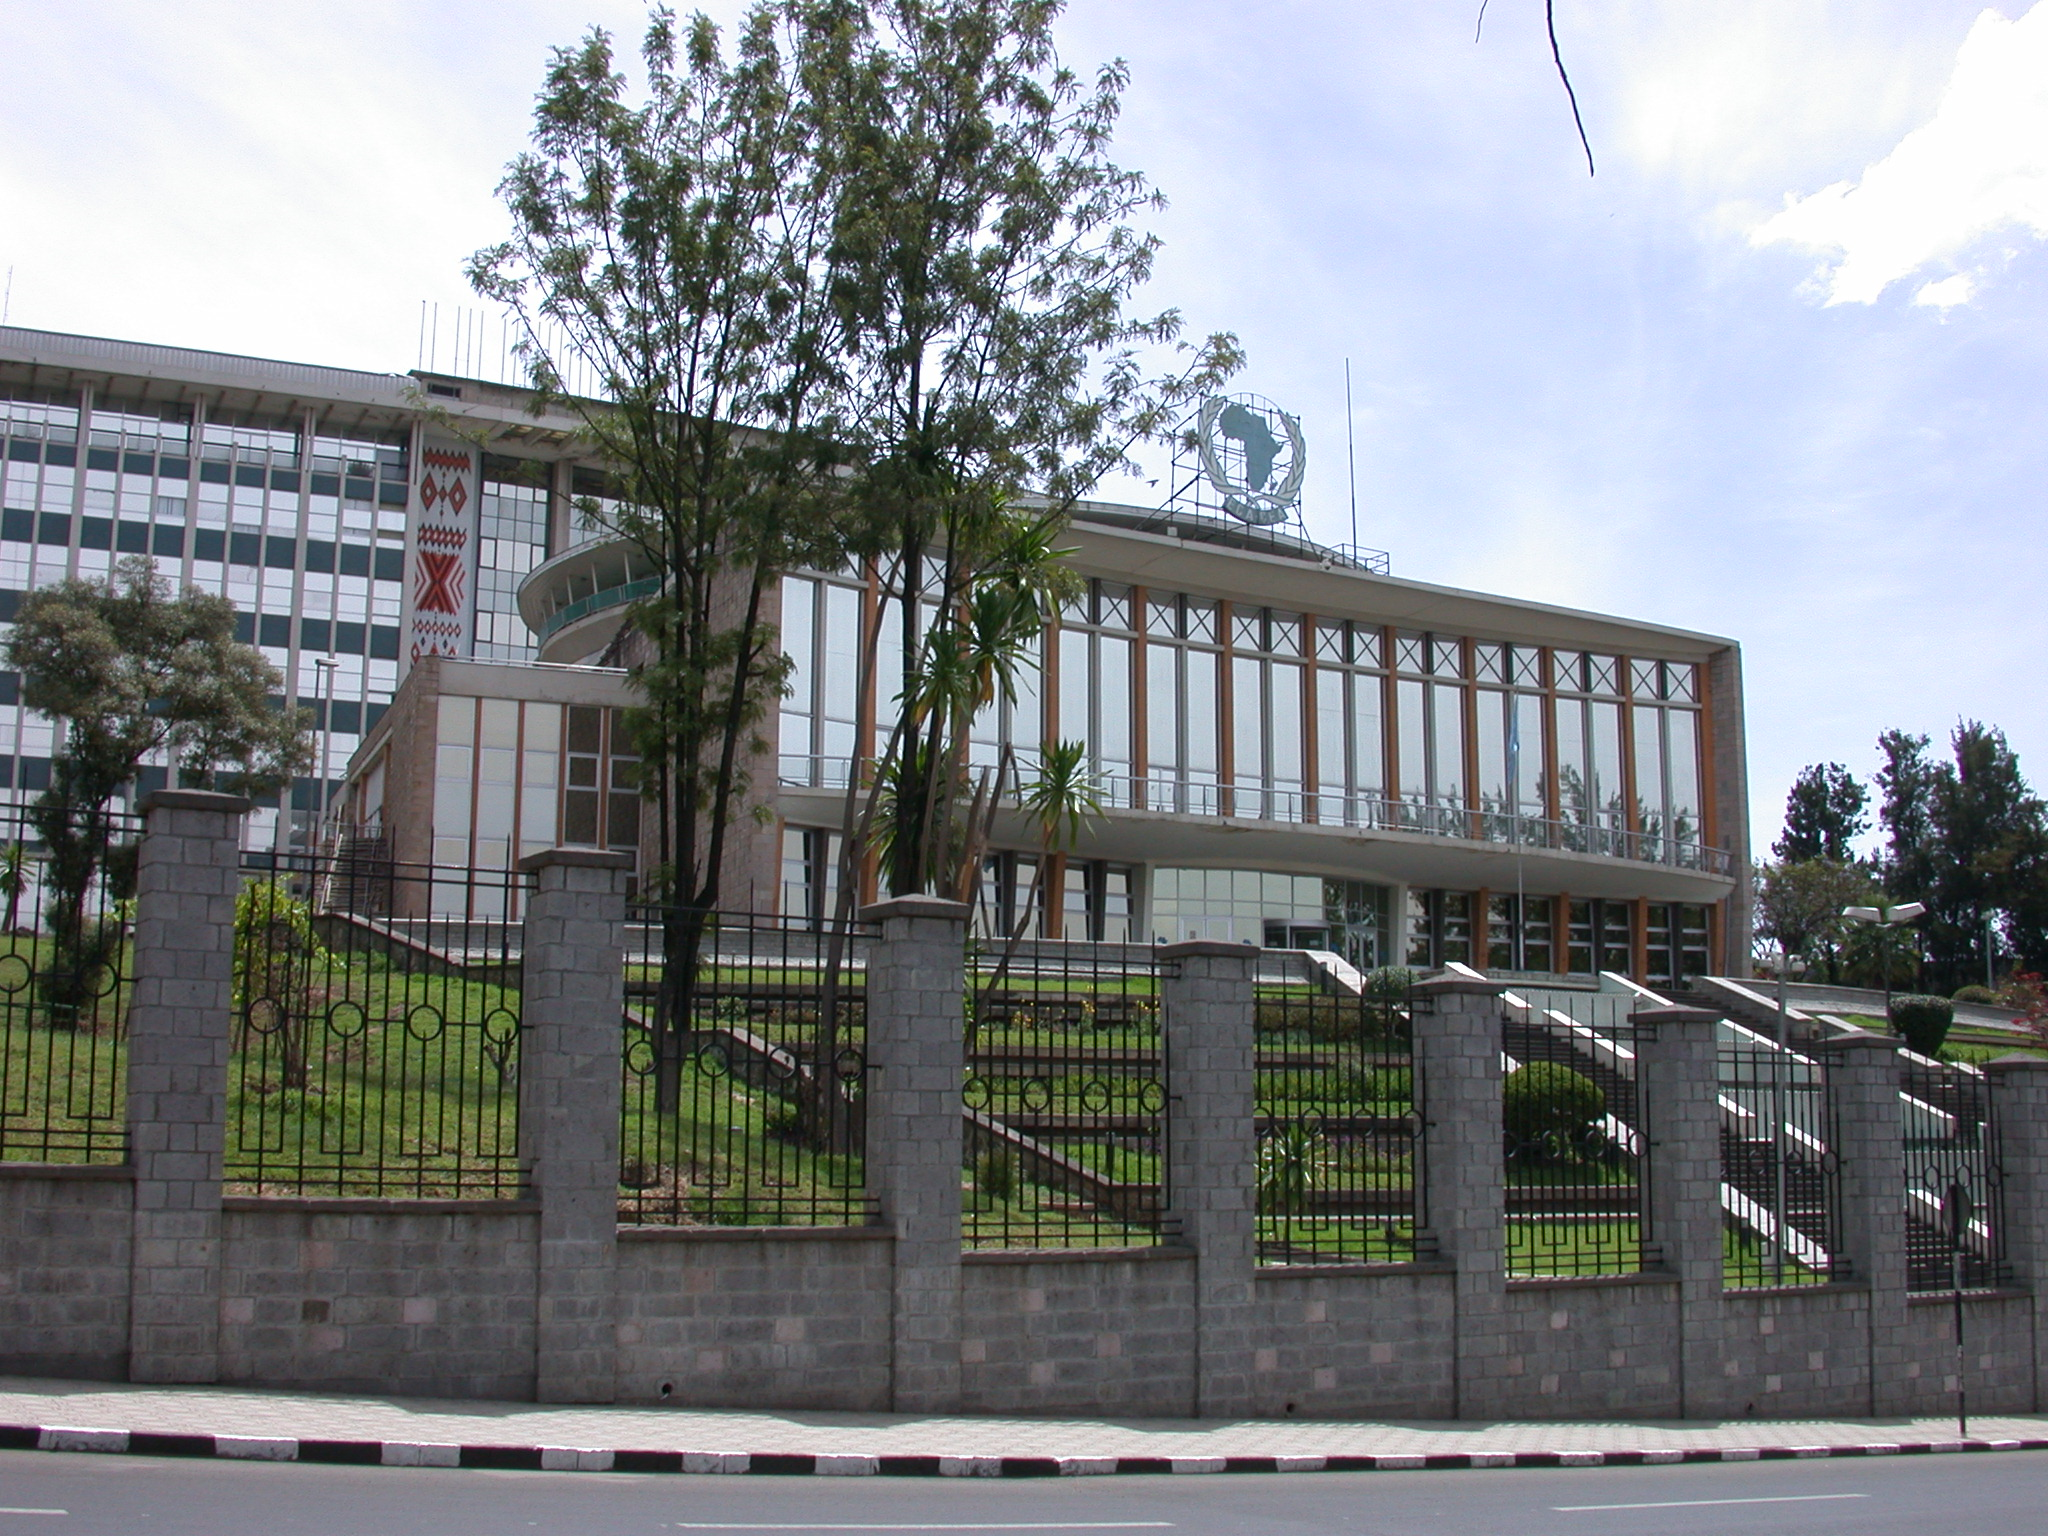 African Union Hall in Addis Ababa, Ethiopia